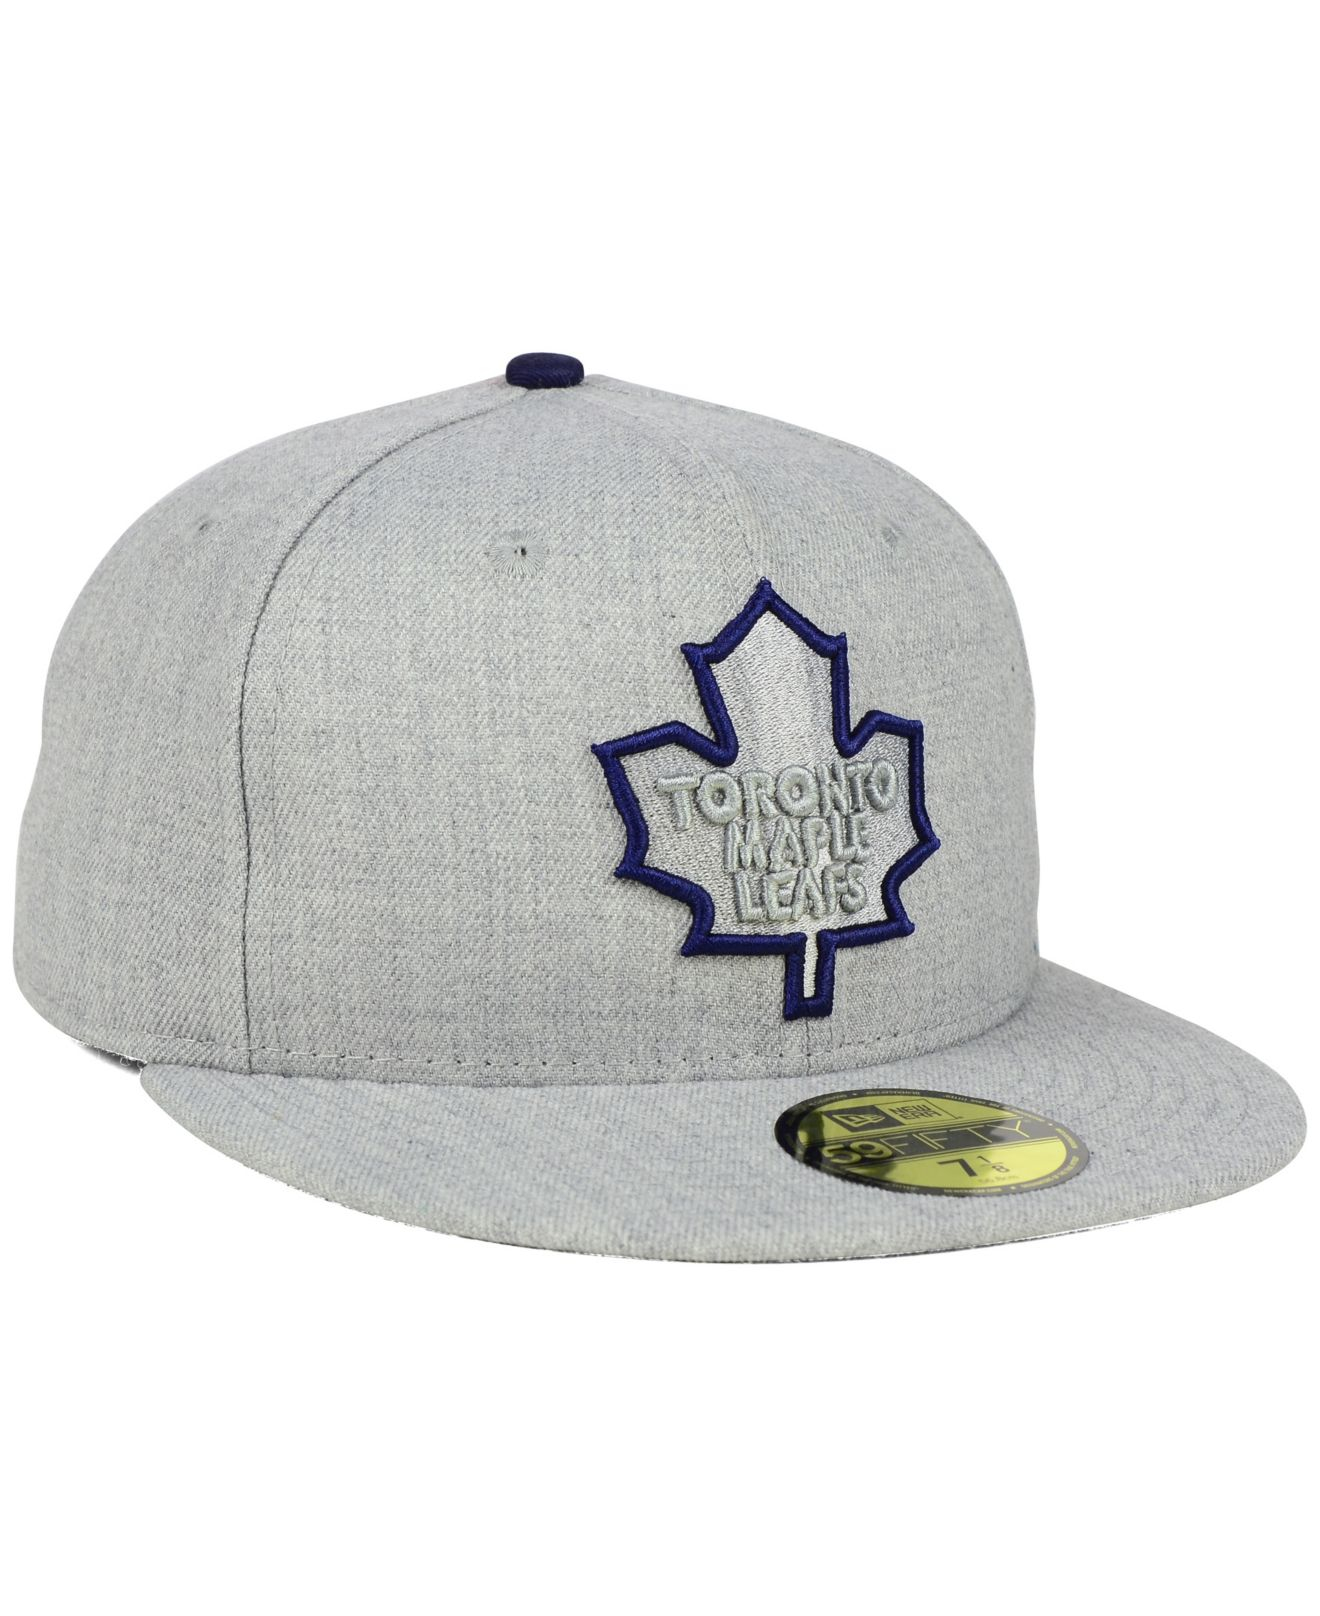 sale retailer 738a6 34cac Lyst - KTZ Toronto Maple Leafs Heather League Basic 59fifty Cap in ...